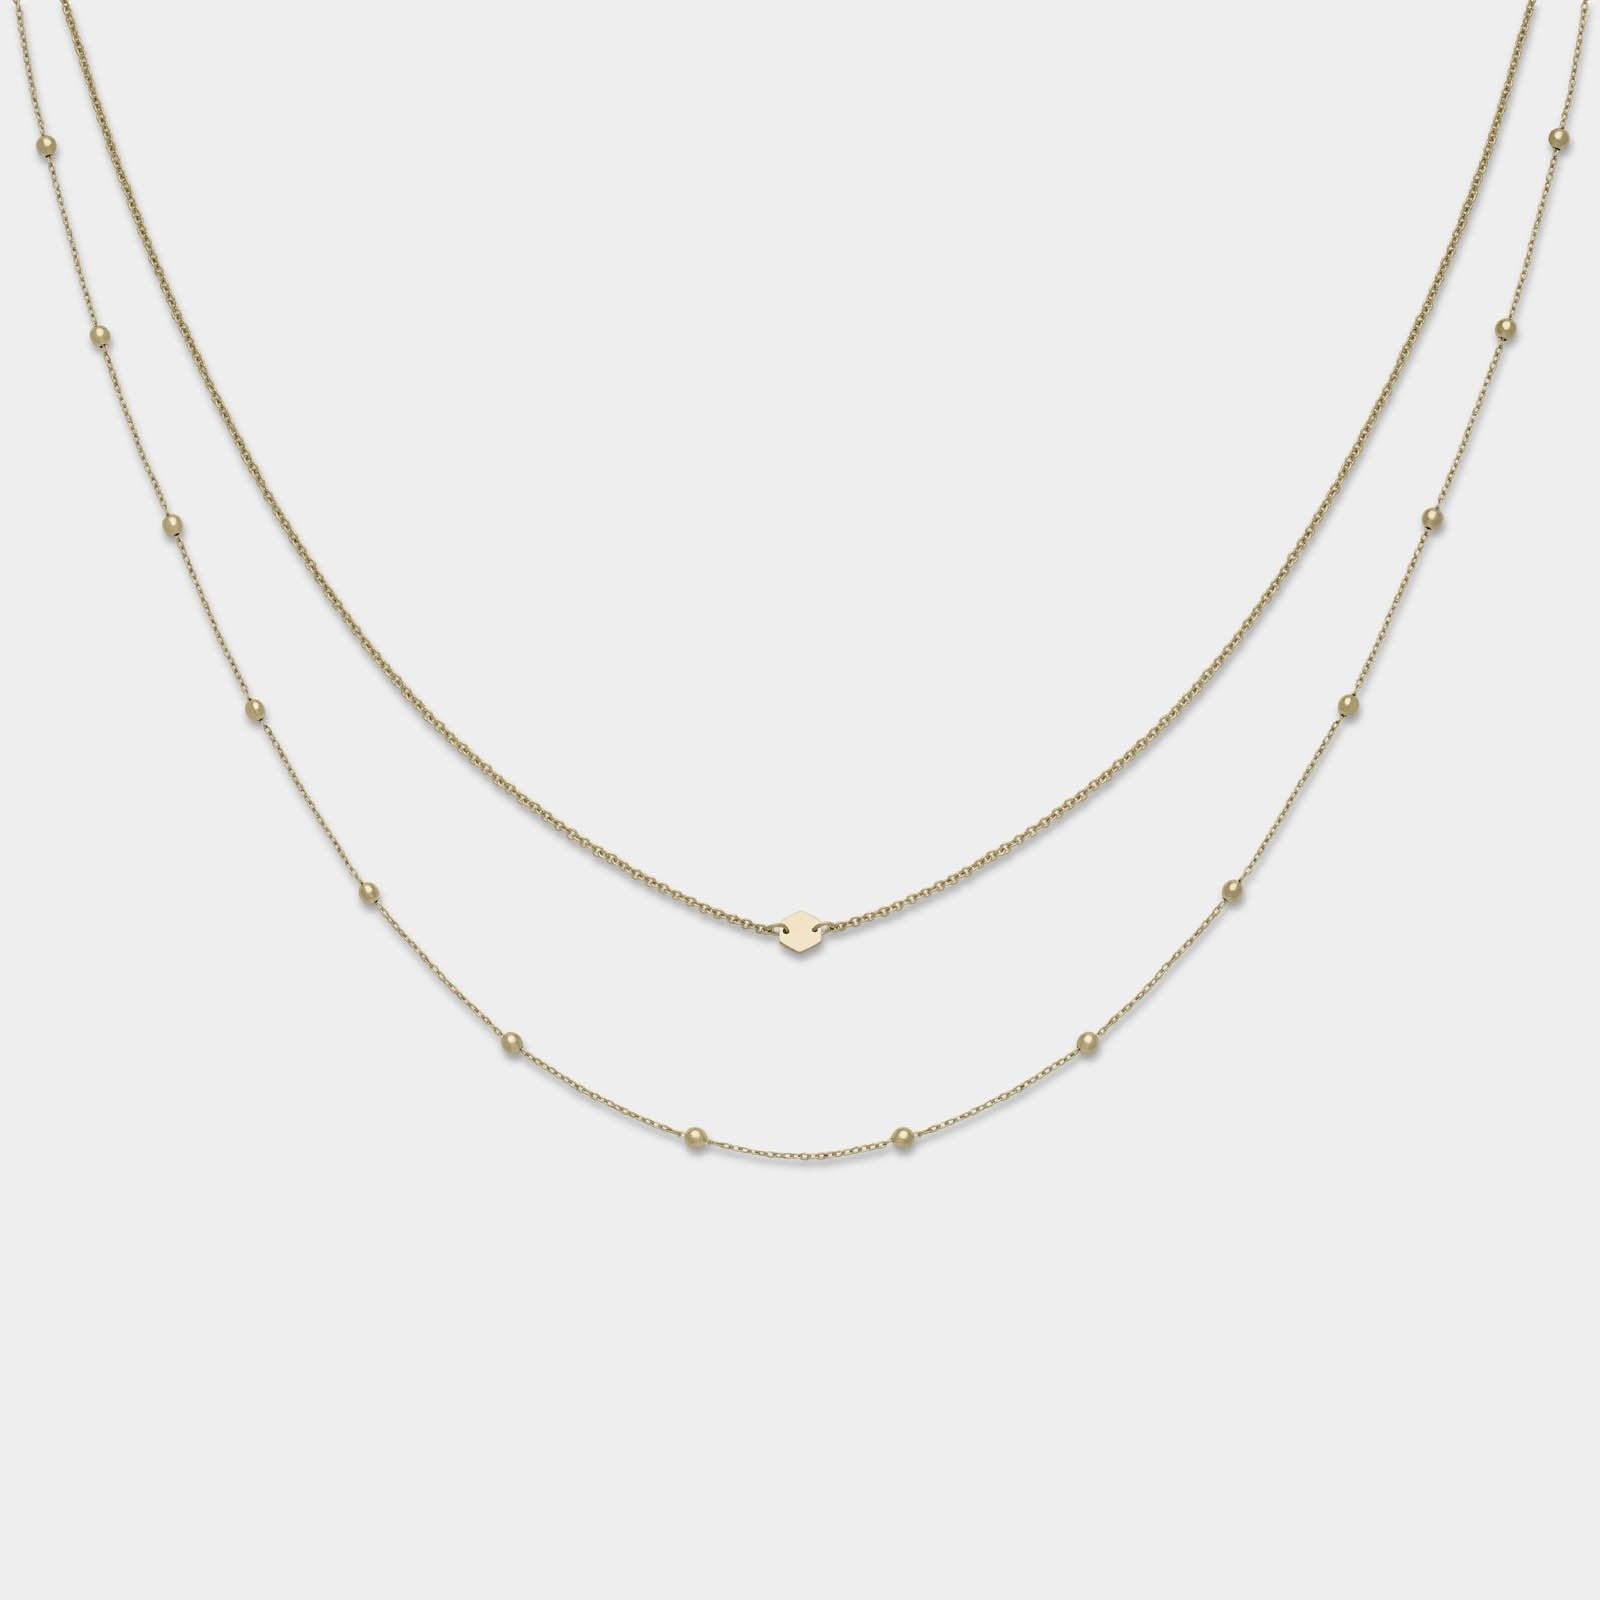 CLUSE Essentielle Gold Set of Two Necklaces with Petite Hexagon CLJ21004 - Collar